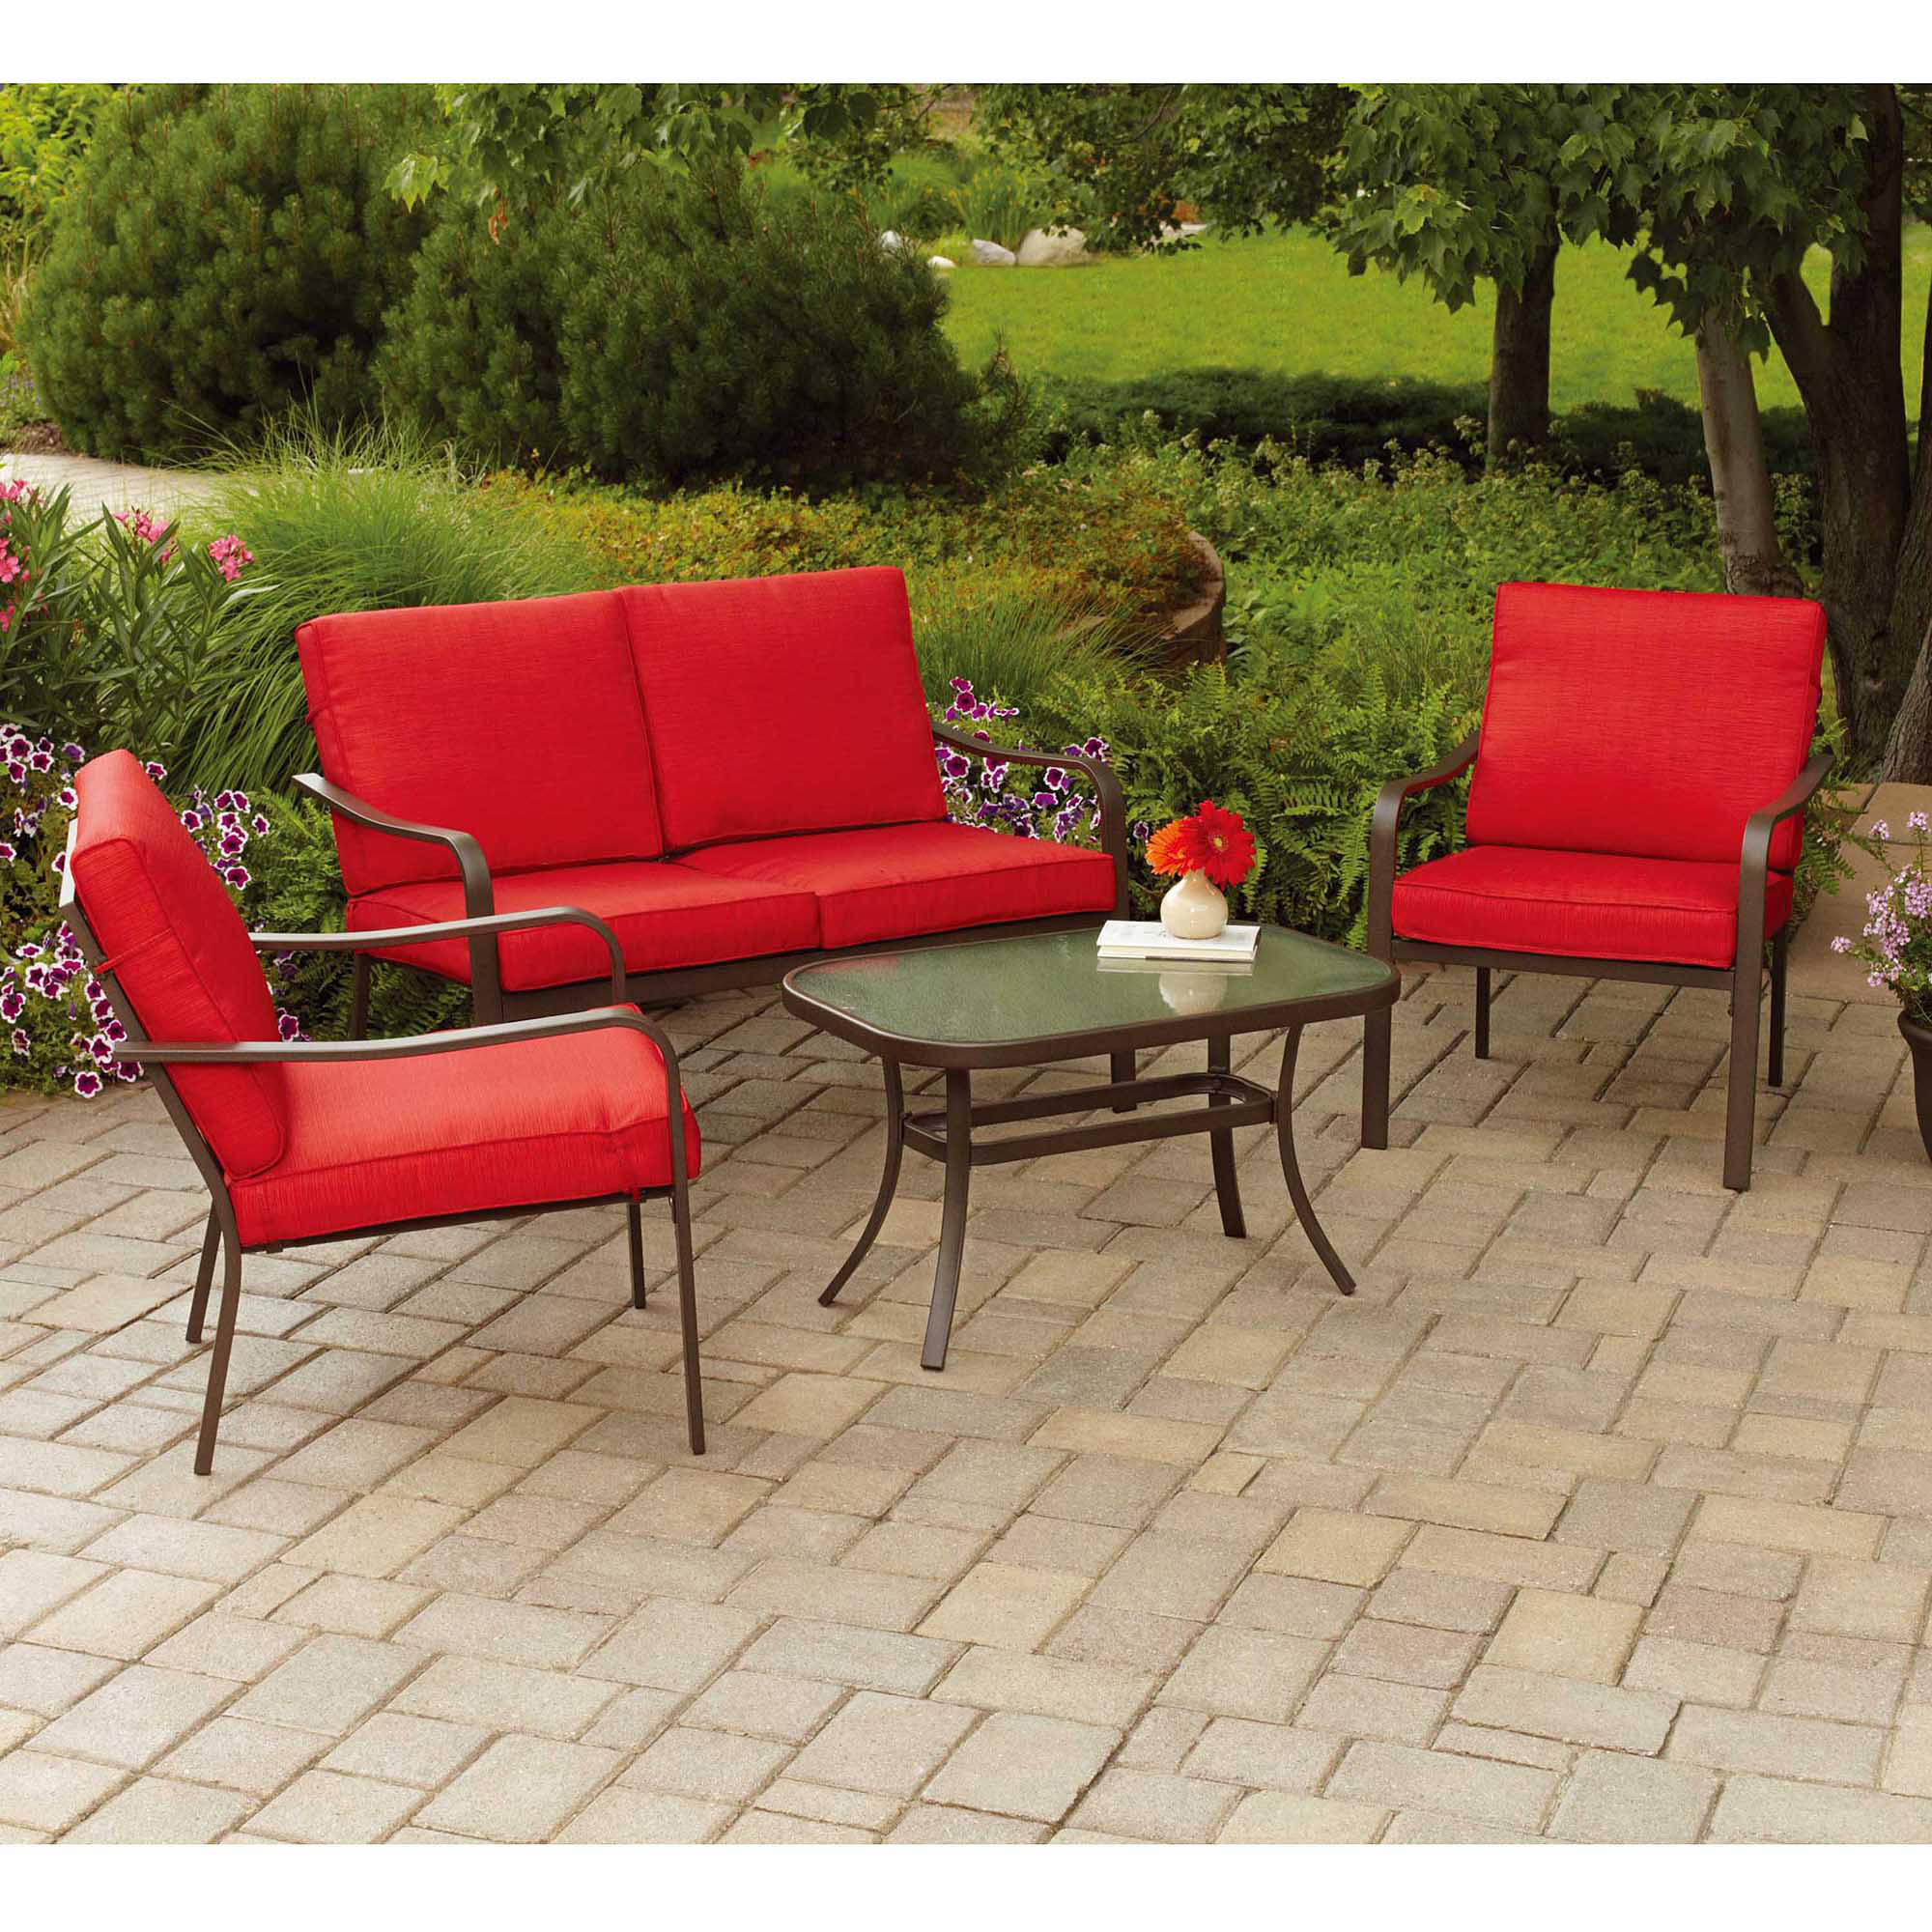 patio dining sets for 4 photo - 3